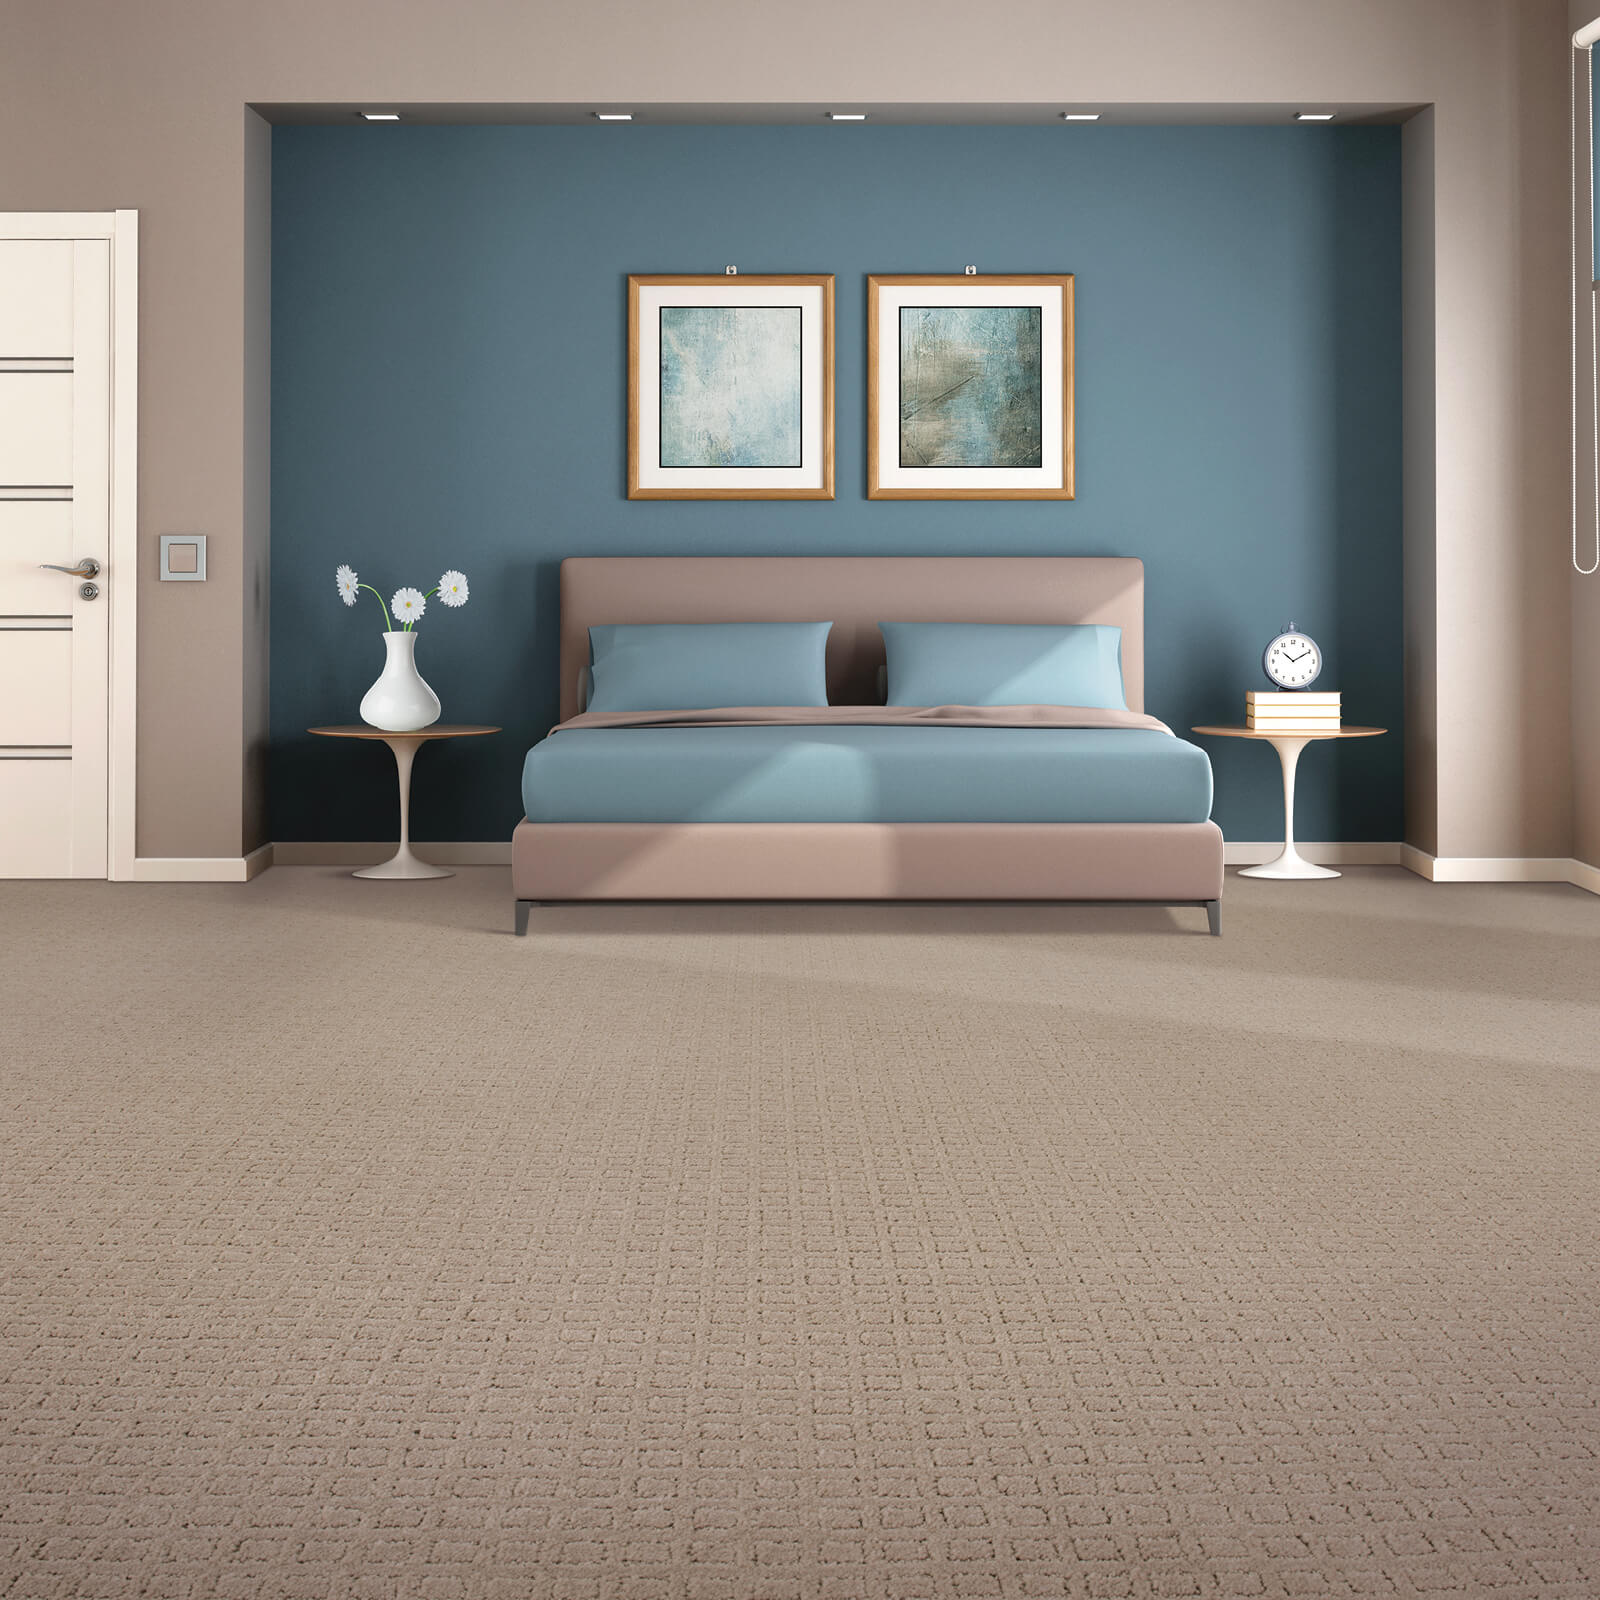 Traditional beauty of bedroom | Great Floors